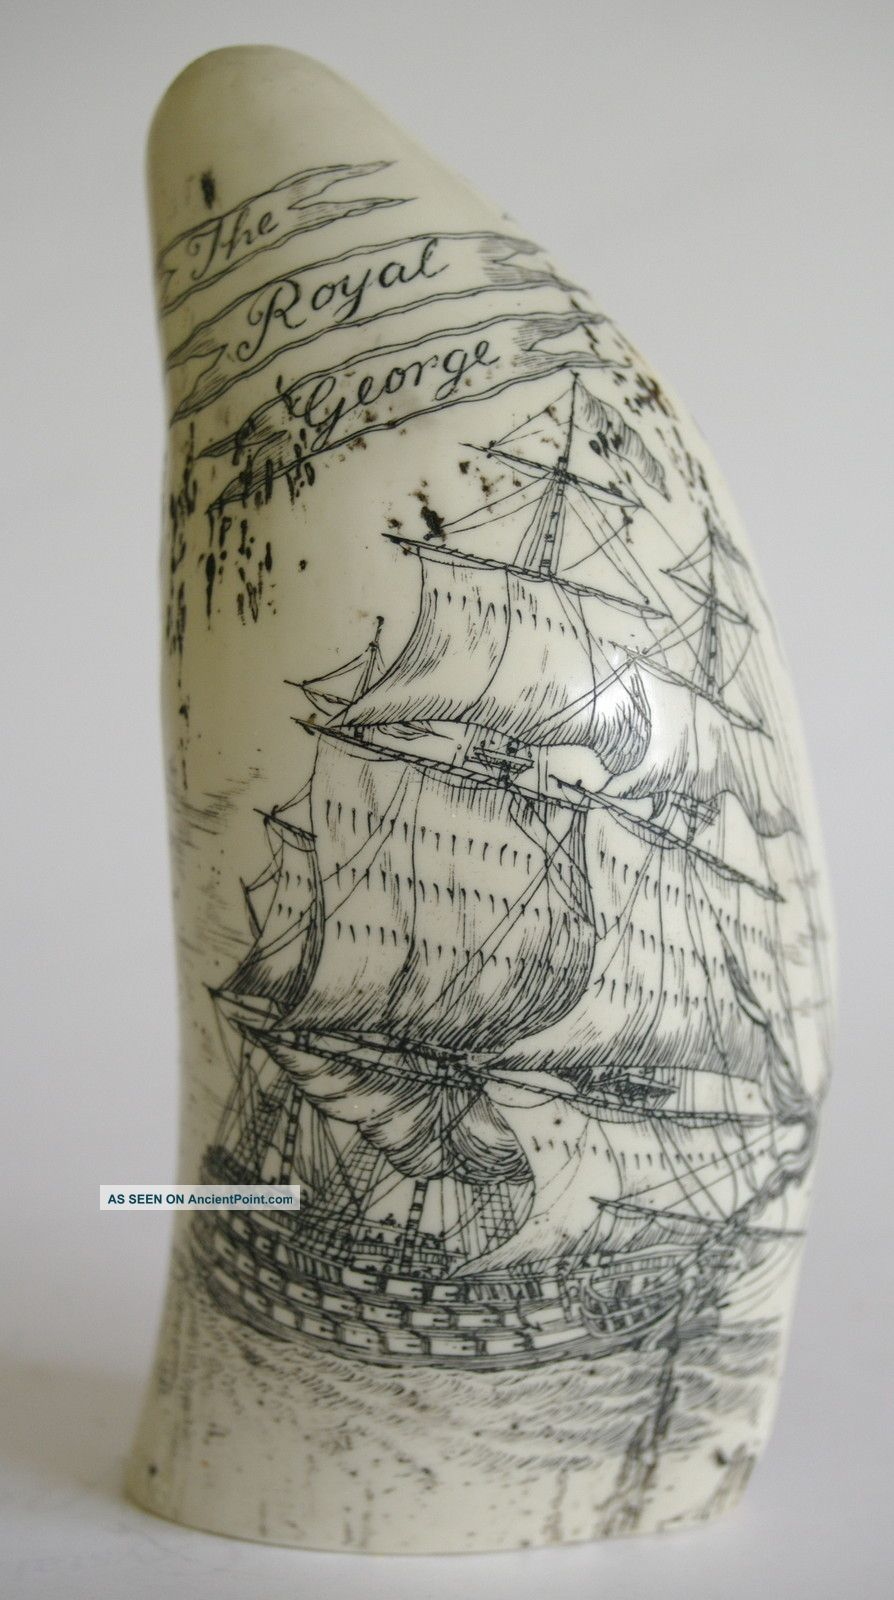 Vintage Imitation Scrimshaw Whale Tooth - Royalgeorge - Vgc Other photo